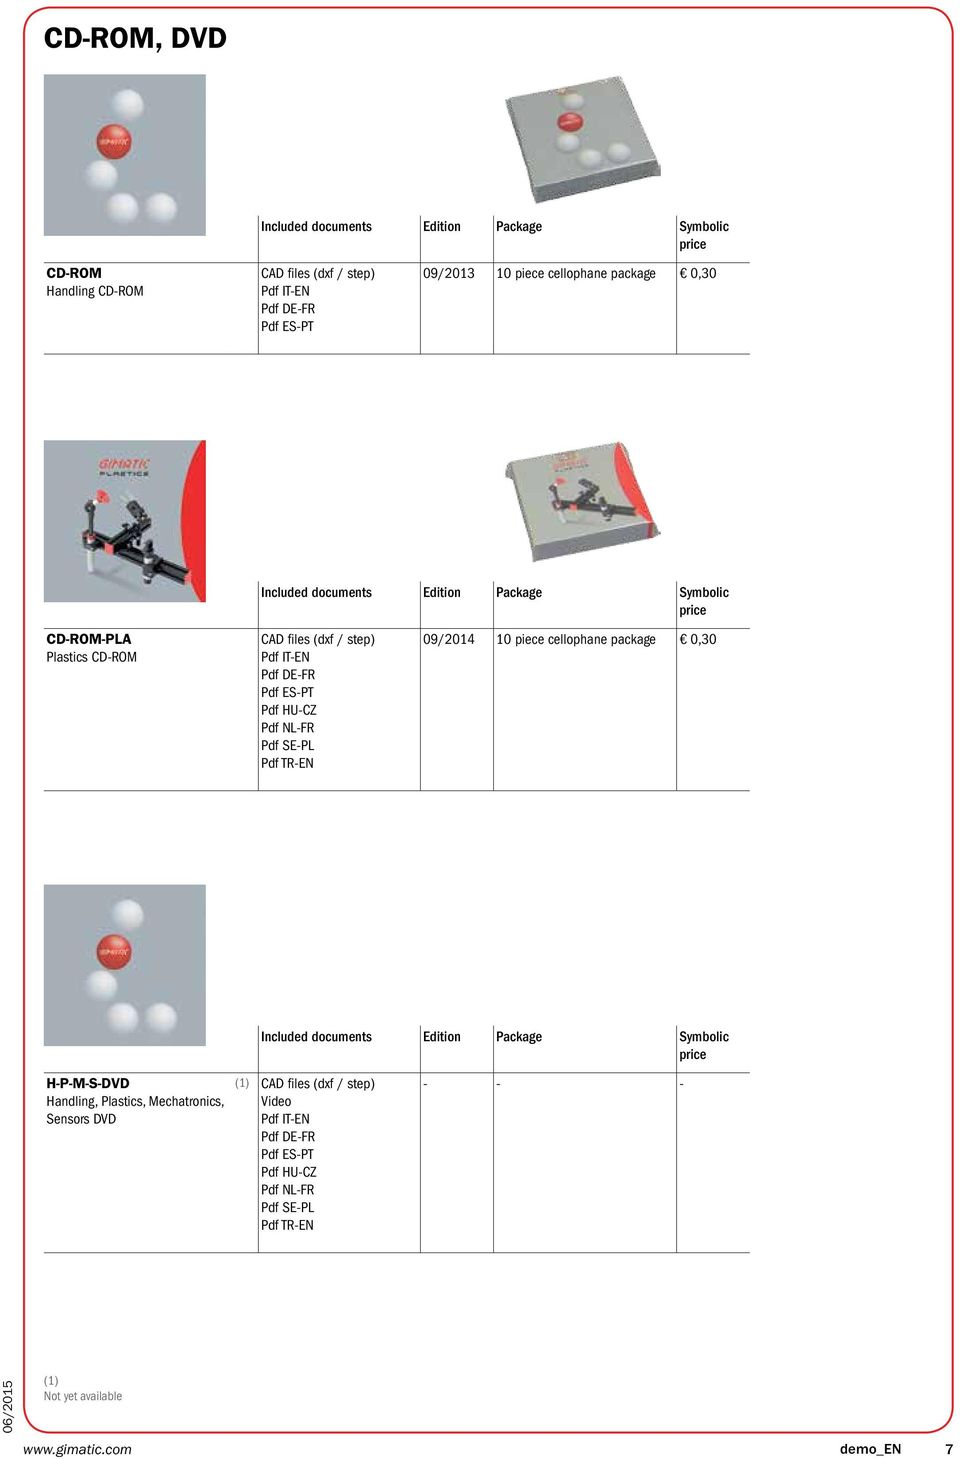 Pdf NL-FR Pdf SE-PL Pdf TR-EN 09/2014 10 piece cellophane package 0,30 Included documents Edition Package Symbolic price H-P-M-S-DVD Handling, Plastics,